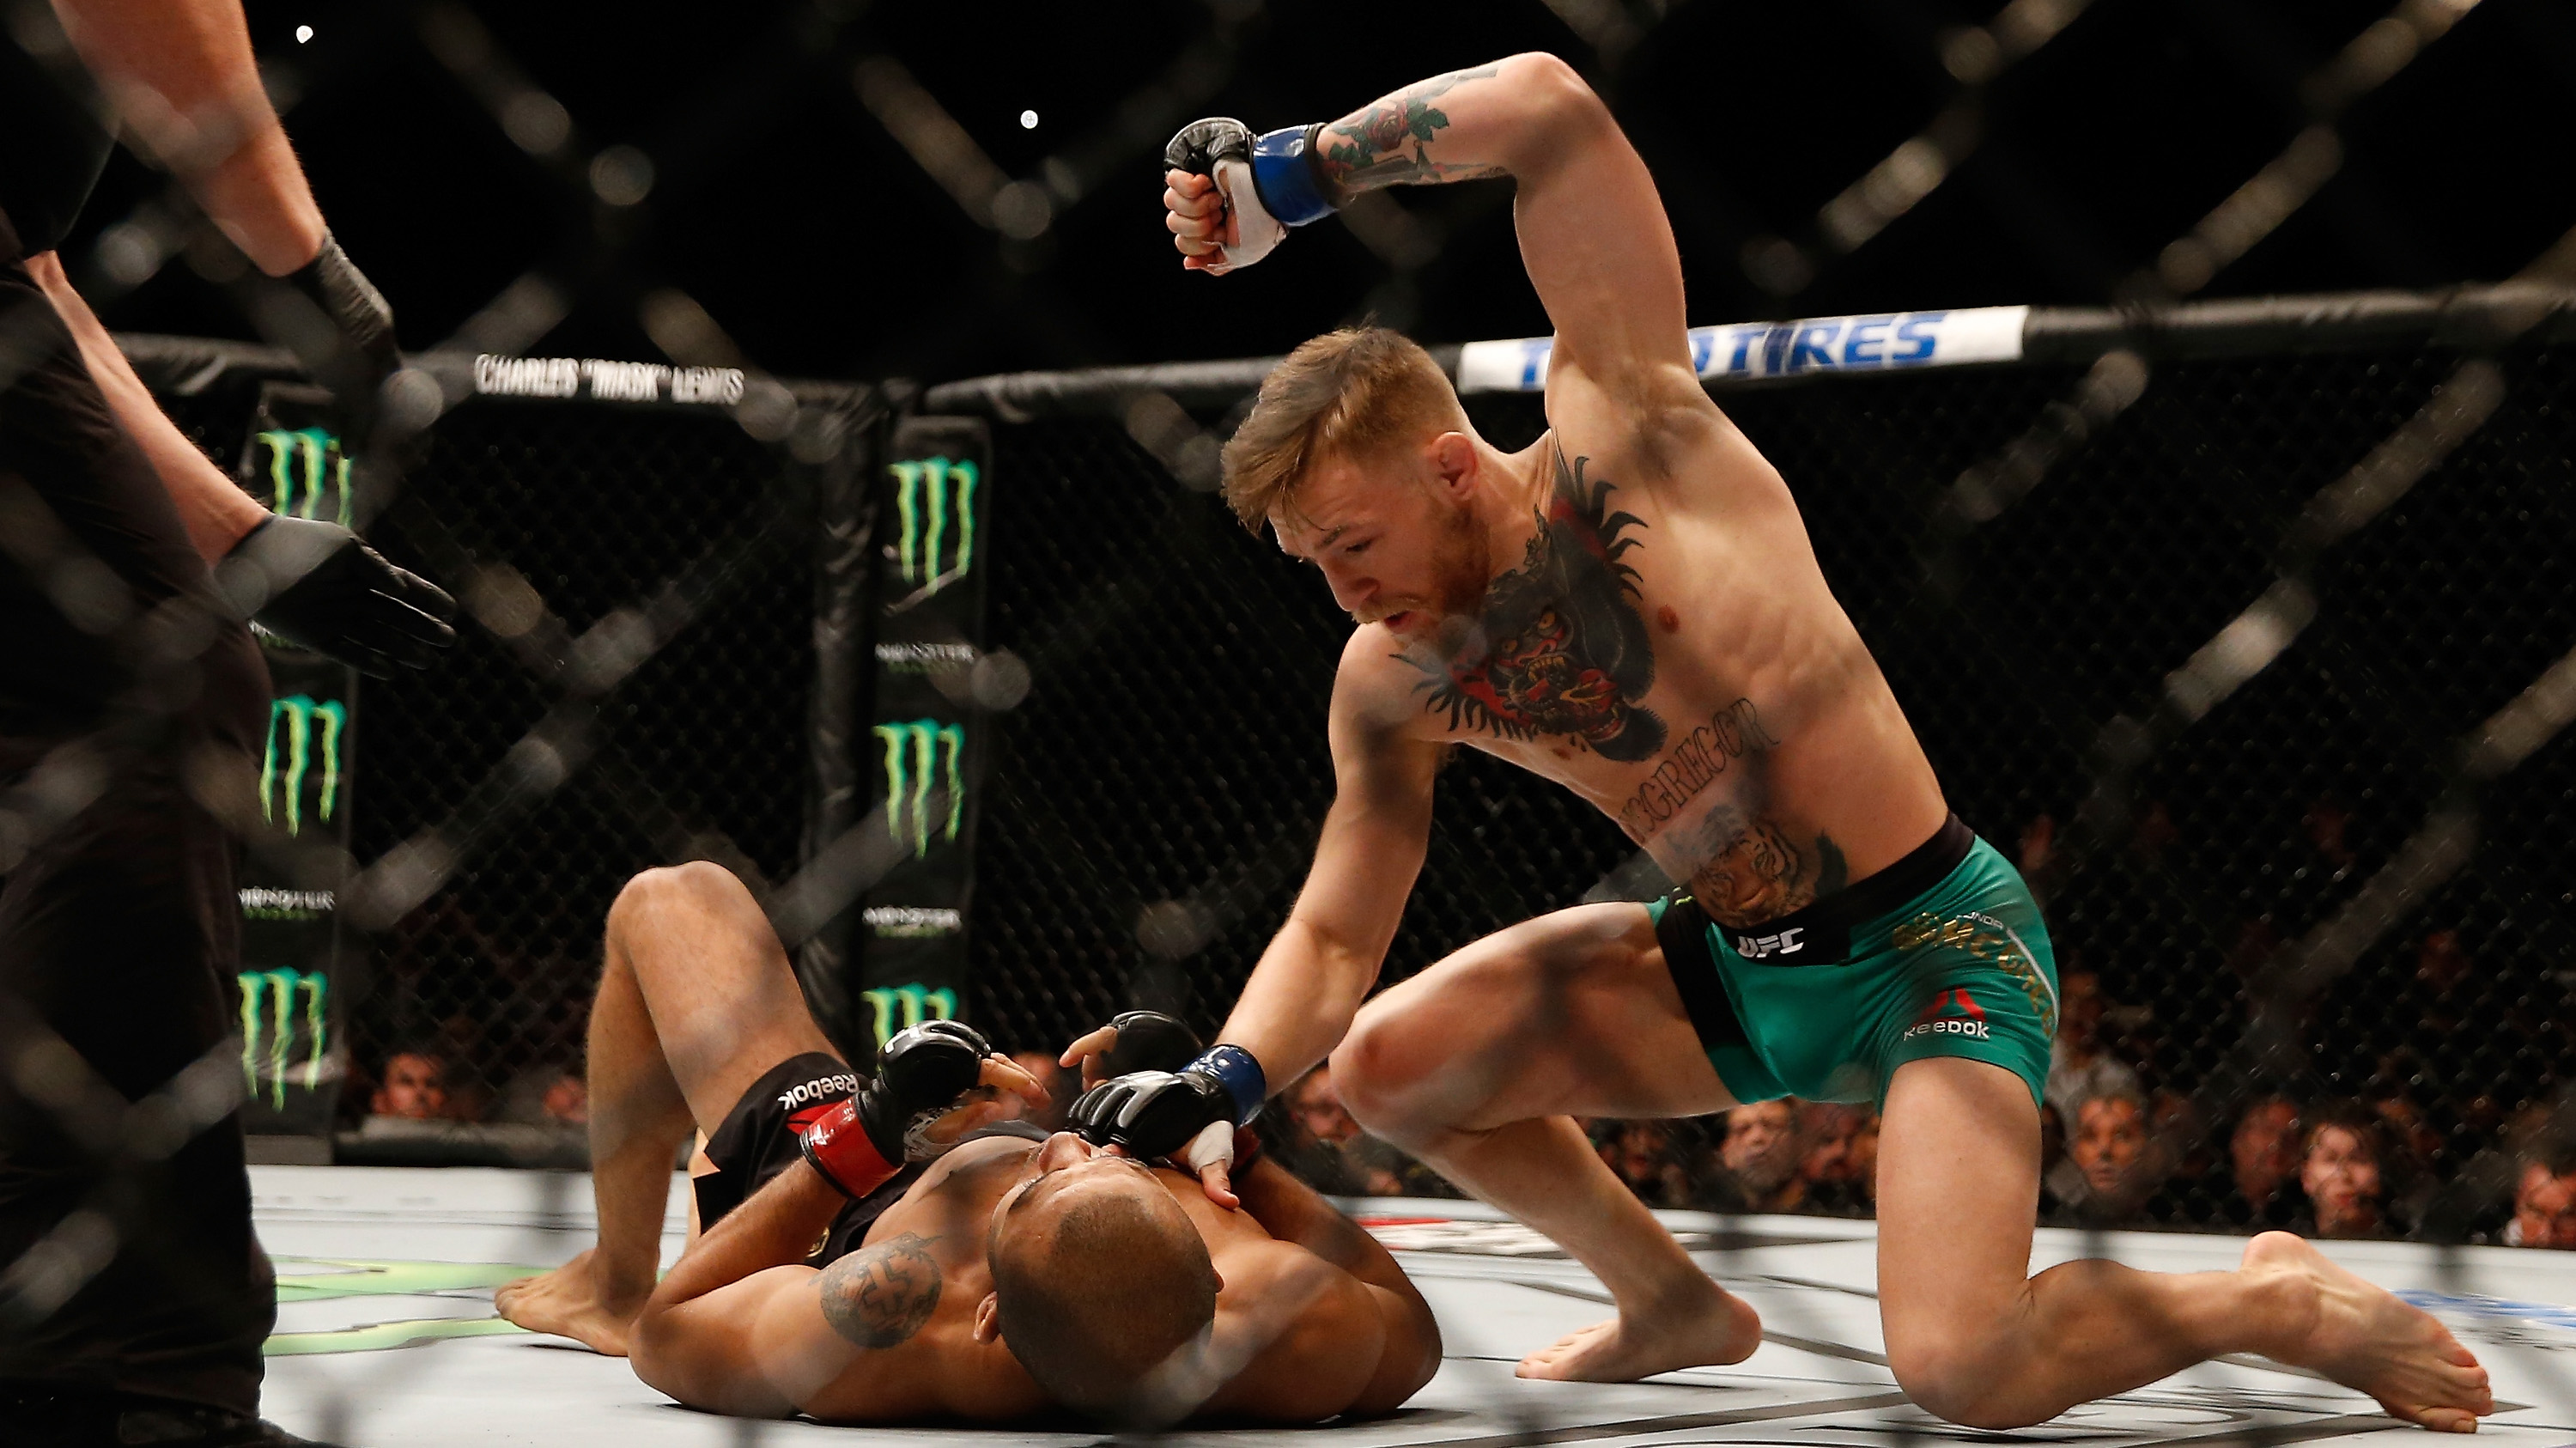 Conor McGregor (Photo by Christian Petersen/Zuffa LLC/Zuffa LLC via Getty Images)